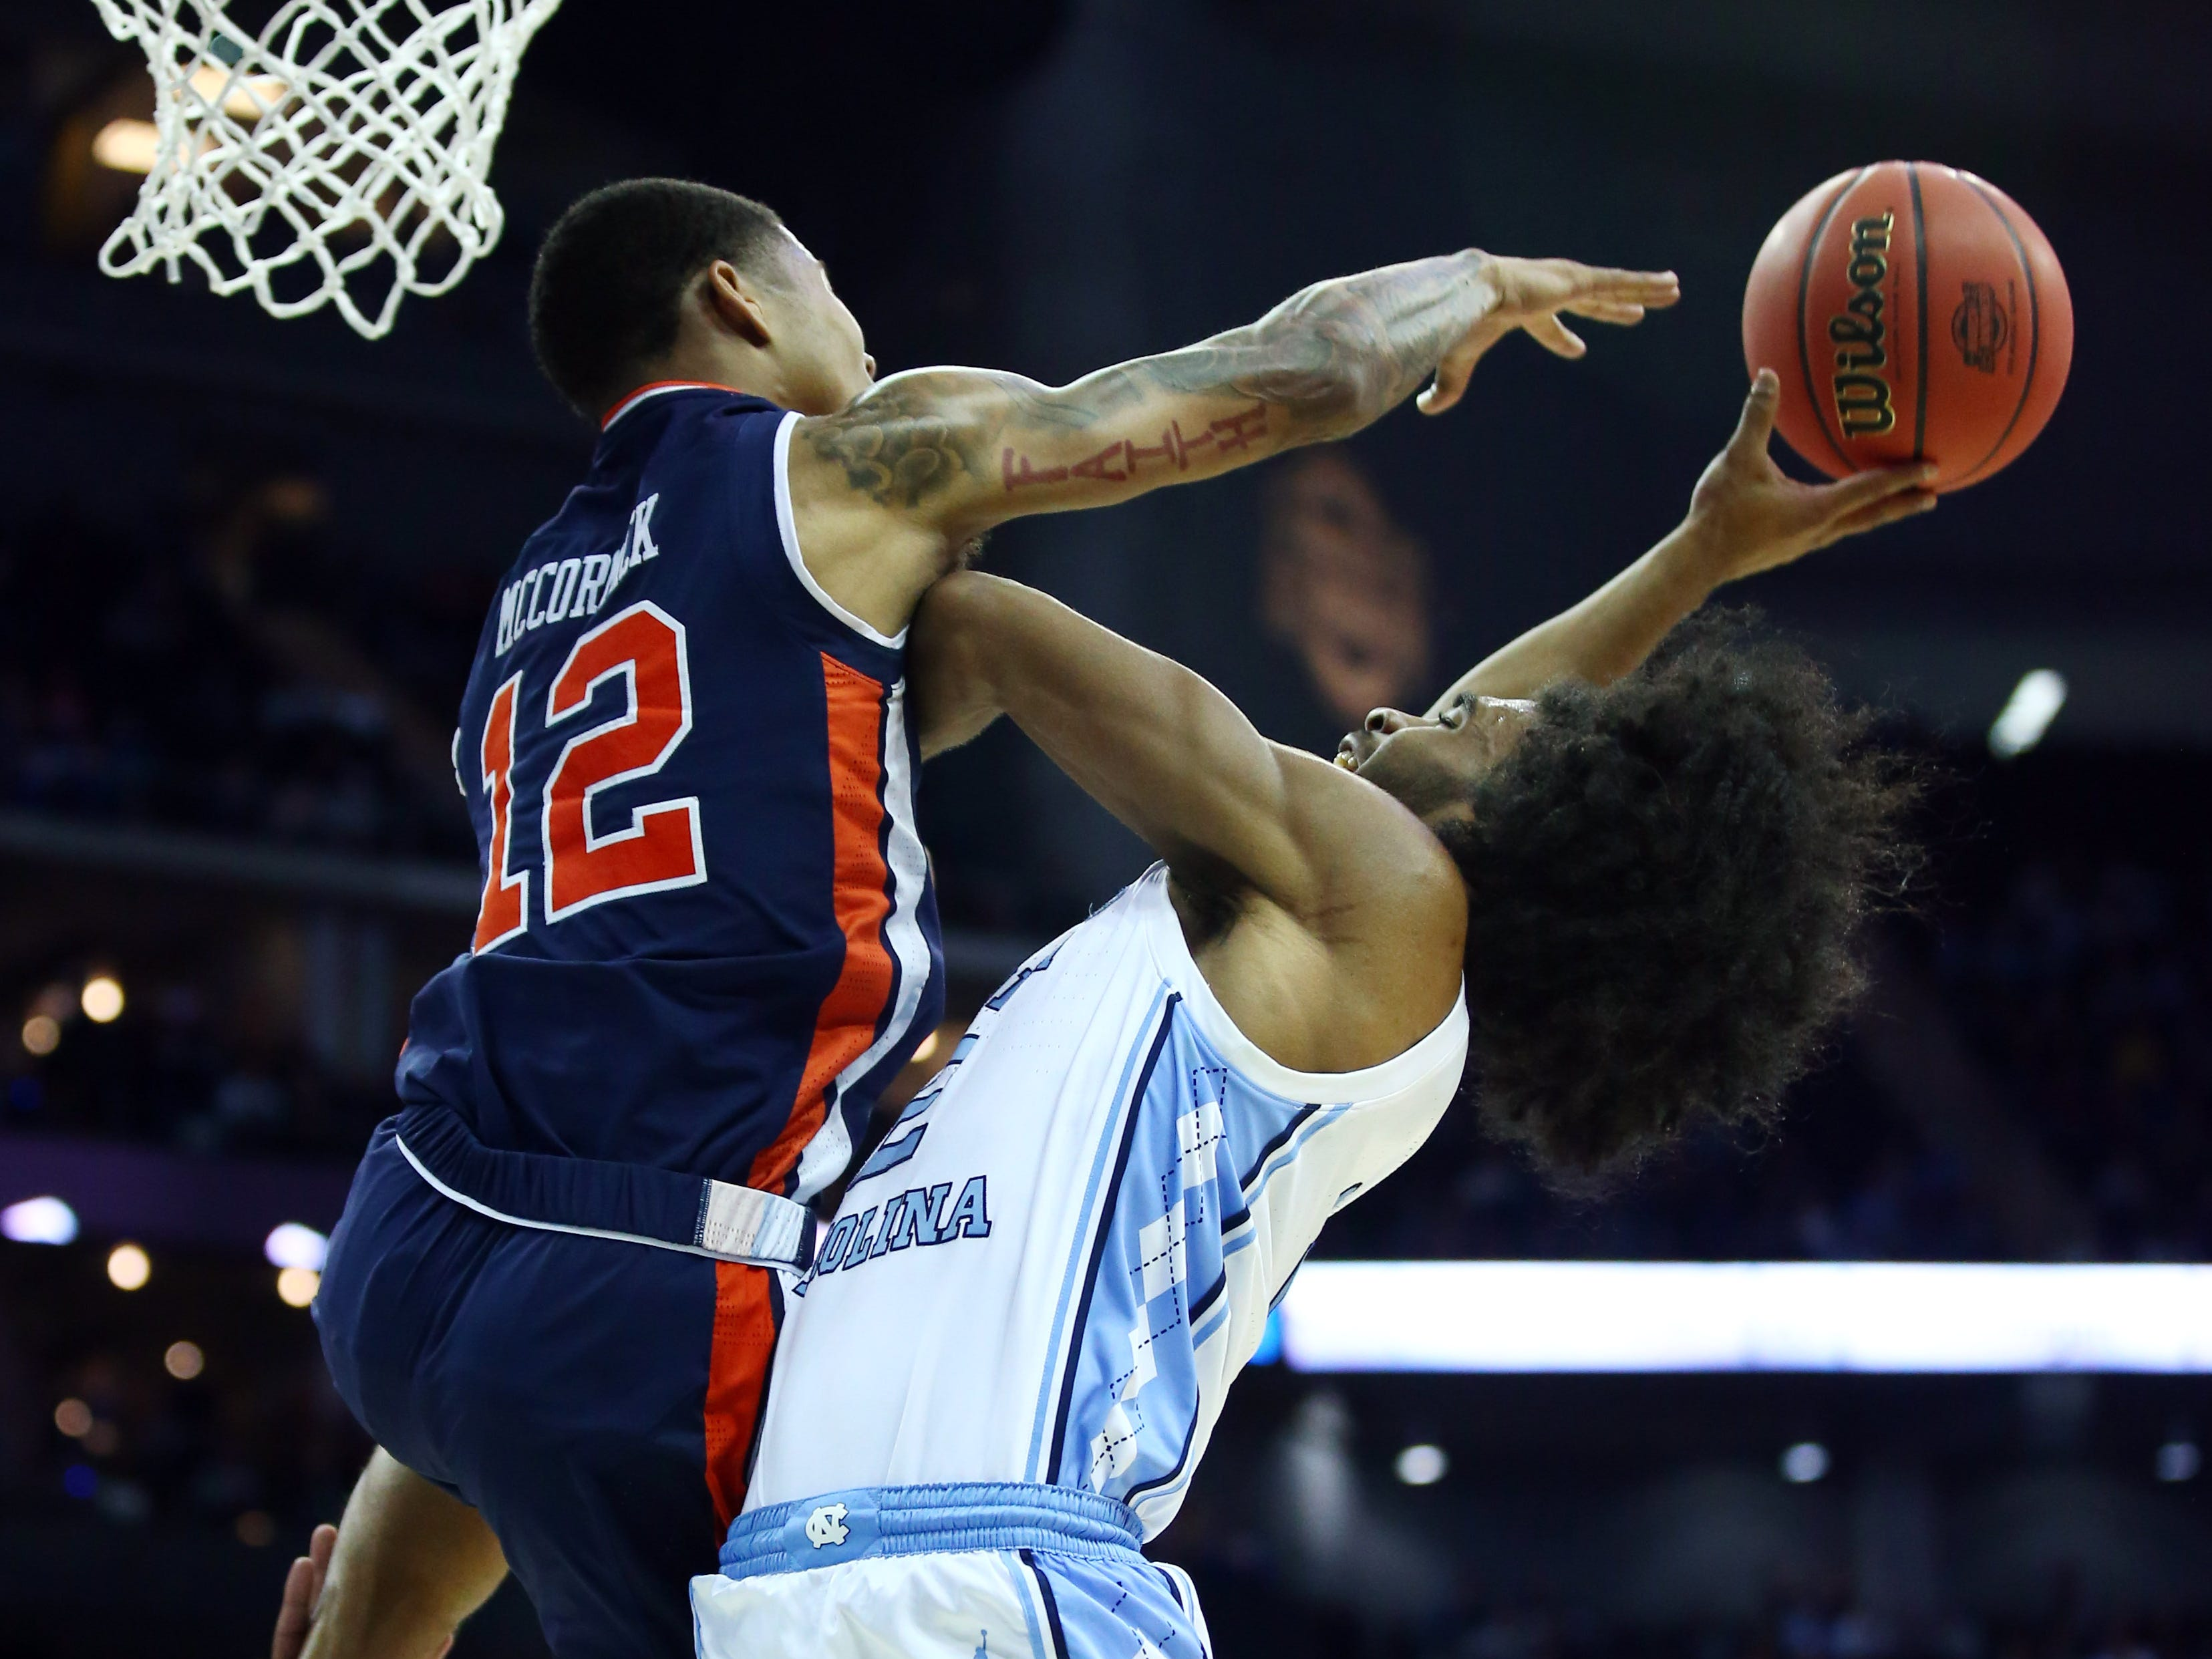 Mar 29, 2019; Kansas City, MO, United States; Auburn Tigers guard J'Von McCormick (12) blocks the shot of North Carolina Tar Heels guard Coby White (2) during the first half in the semifinals of the midwest regional of the 2019 NCAA Tournament at Sprint Center. Mandatory Credit: Jay Biggerstaff-USA TODAY Sports